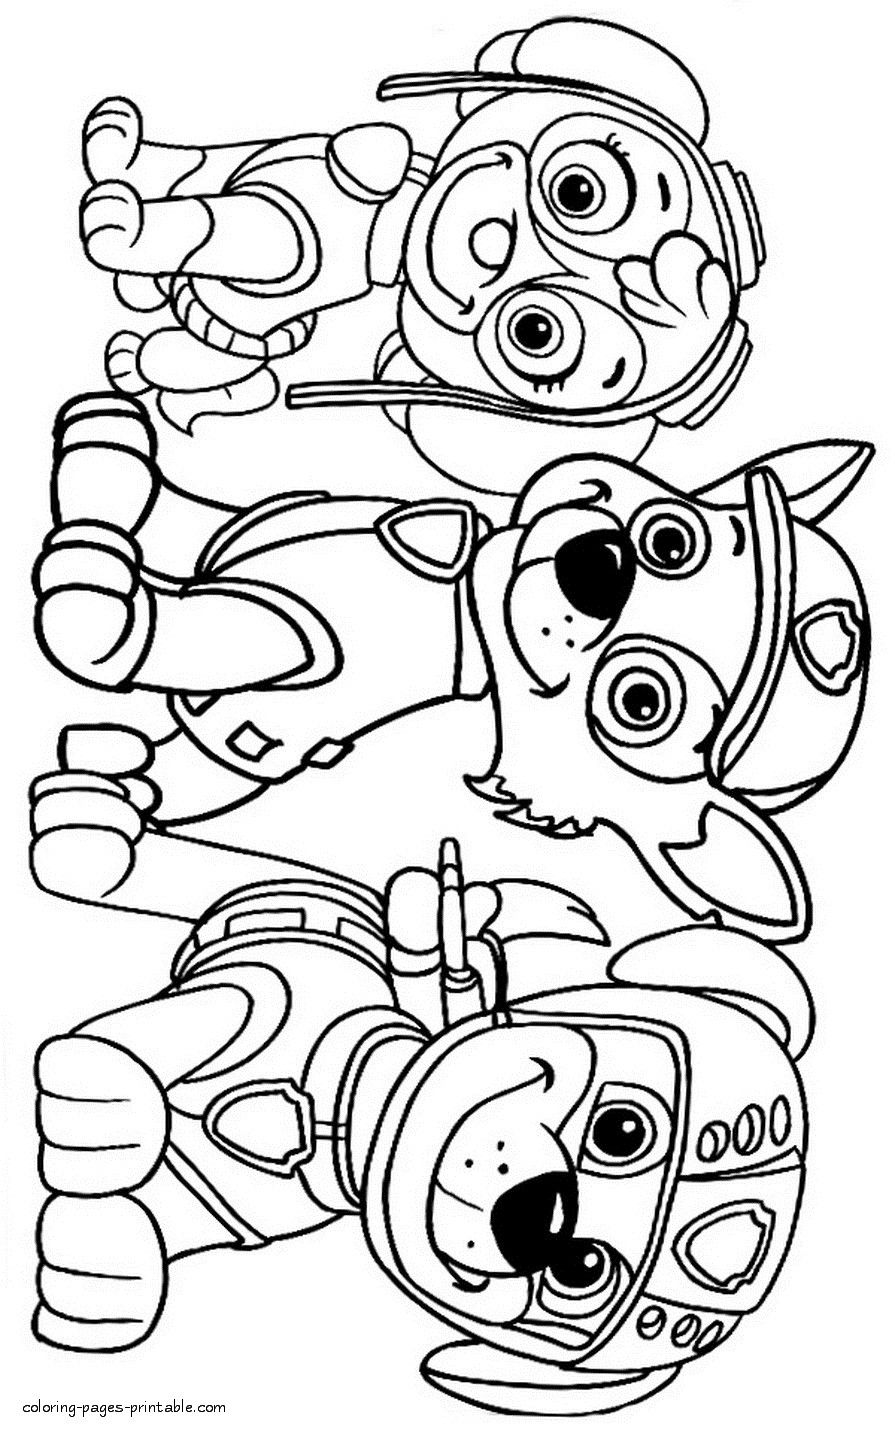 paw patrol sweetie coloring pages pin op kleurplaten sweetie pages patrol paw coloring